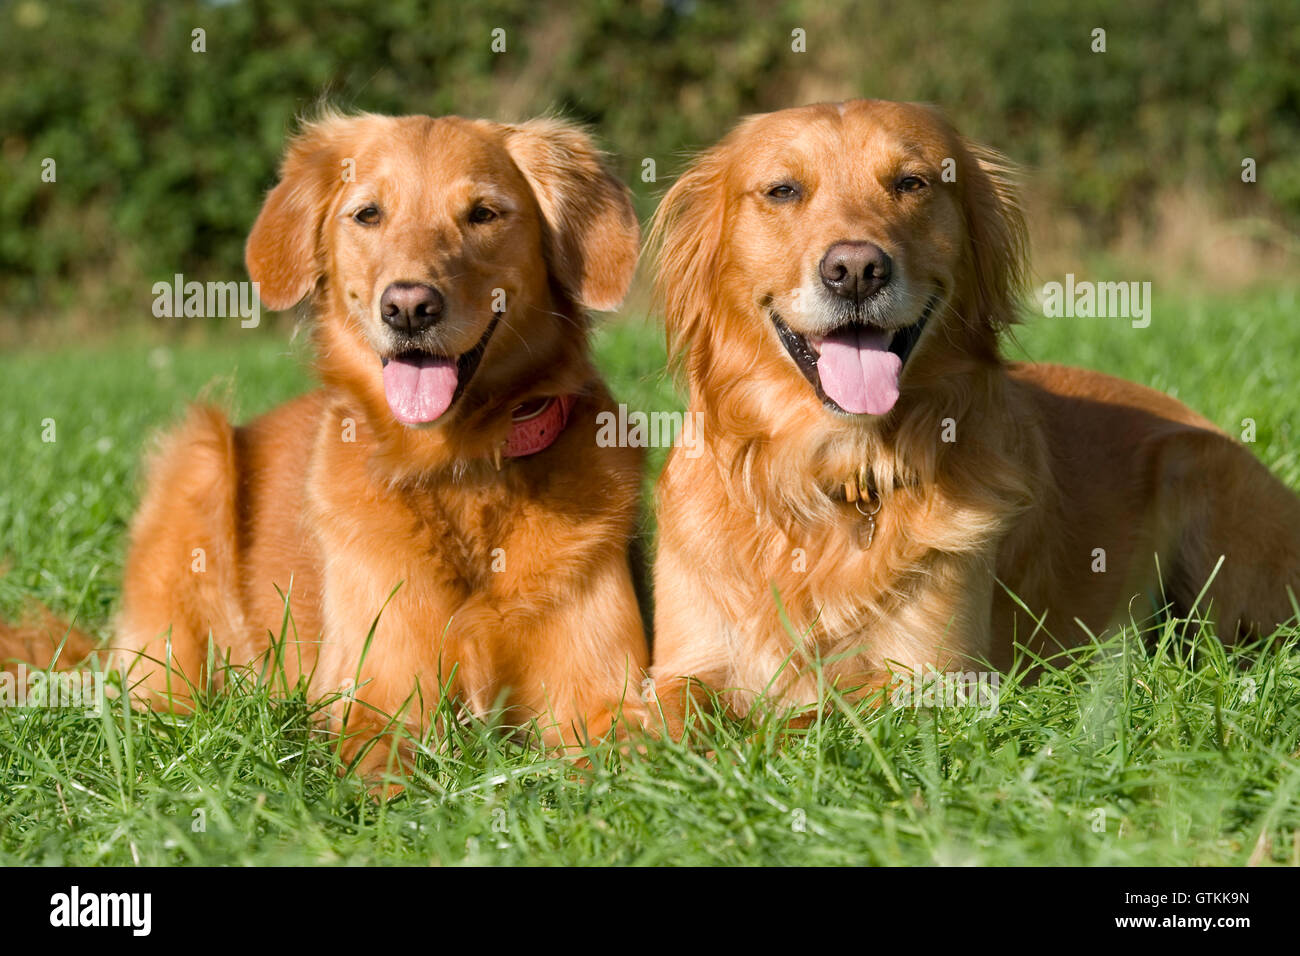 two golden retrievers lying down - Stock Image